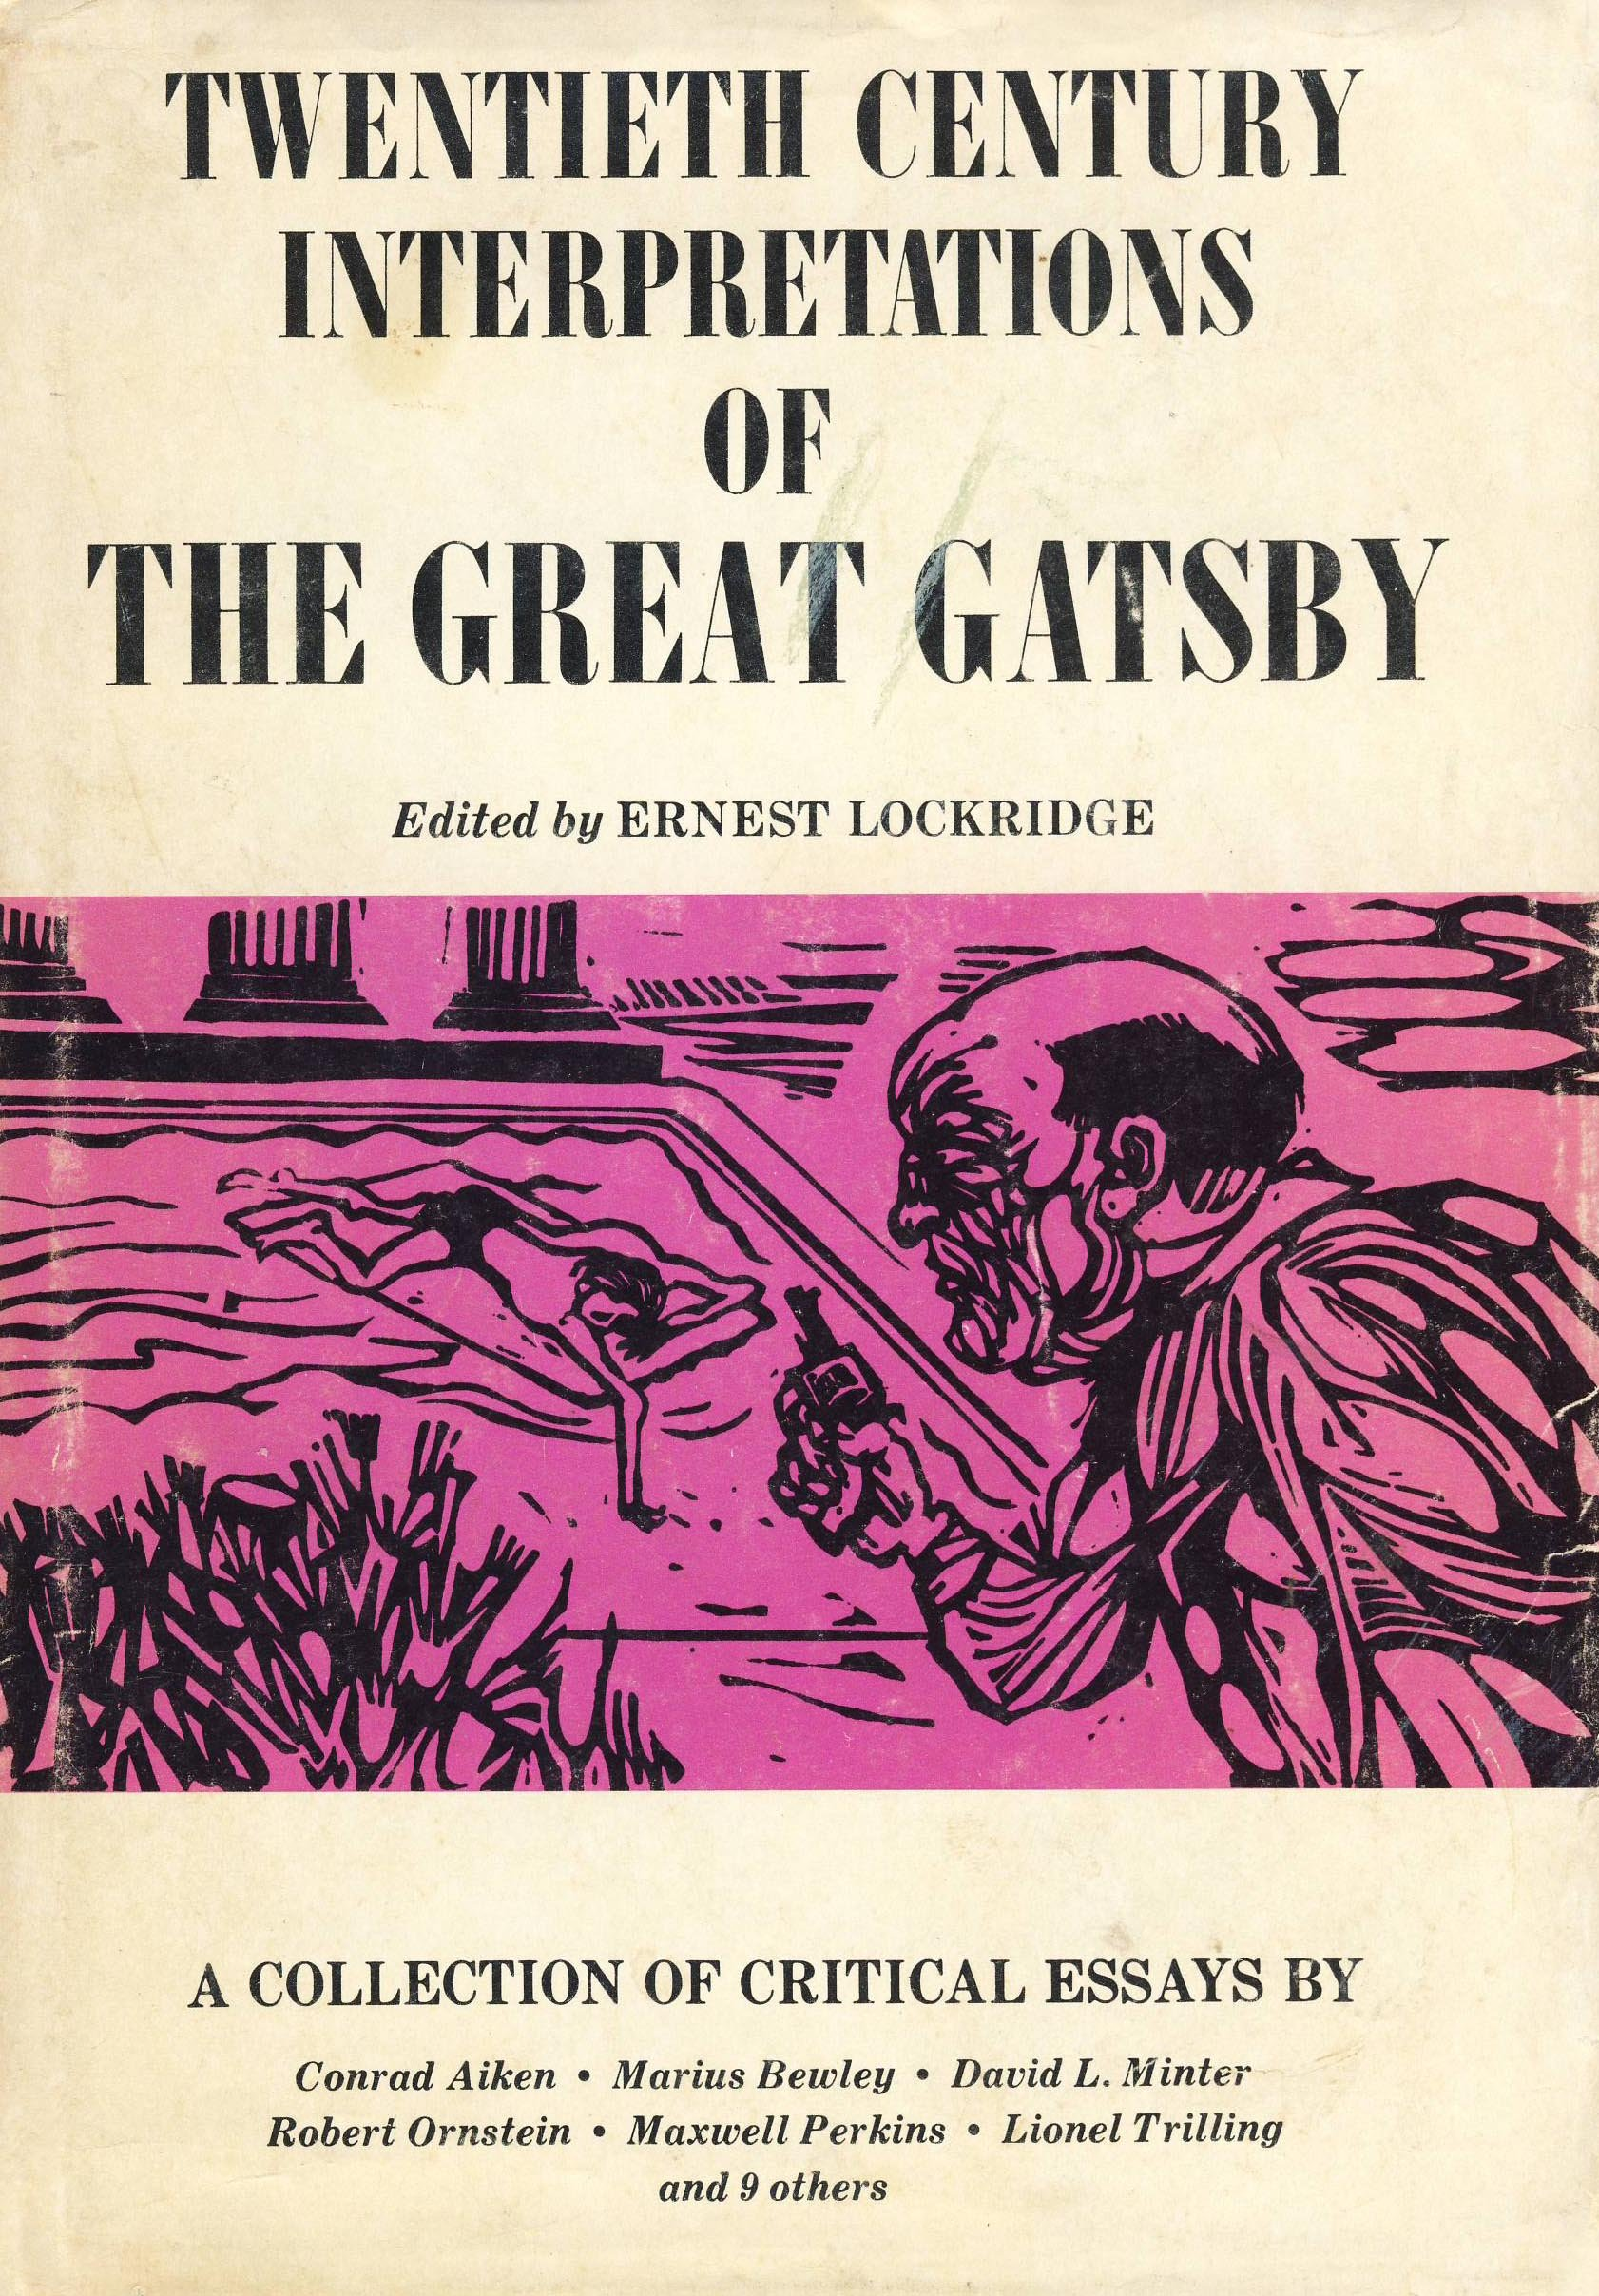 com twentieth century interpretations of the great gatsby com twentieth century interpretations of the great gatsby a collection of critical essays 9780133638202 ernest lockridge books